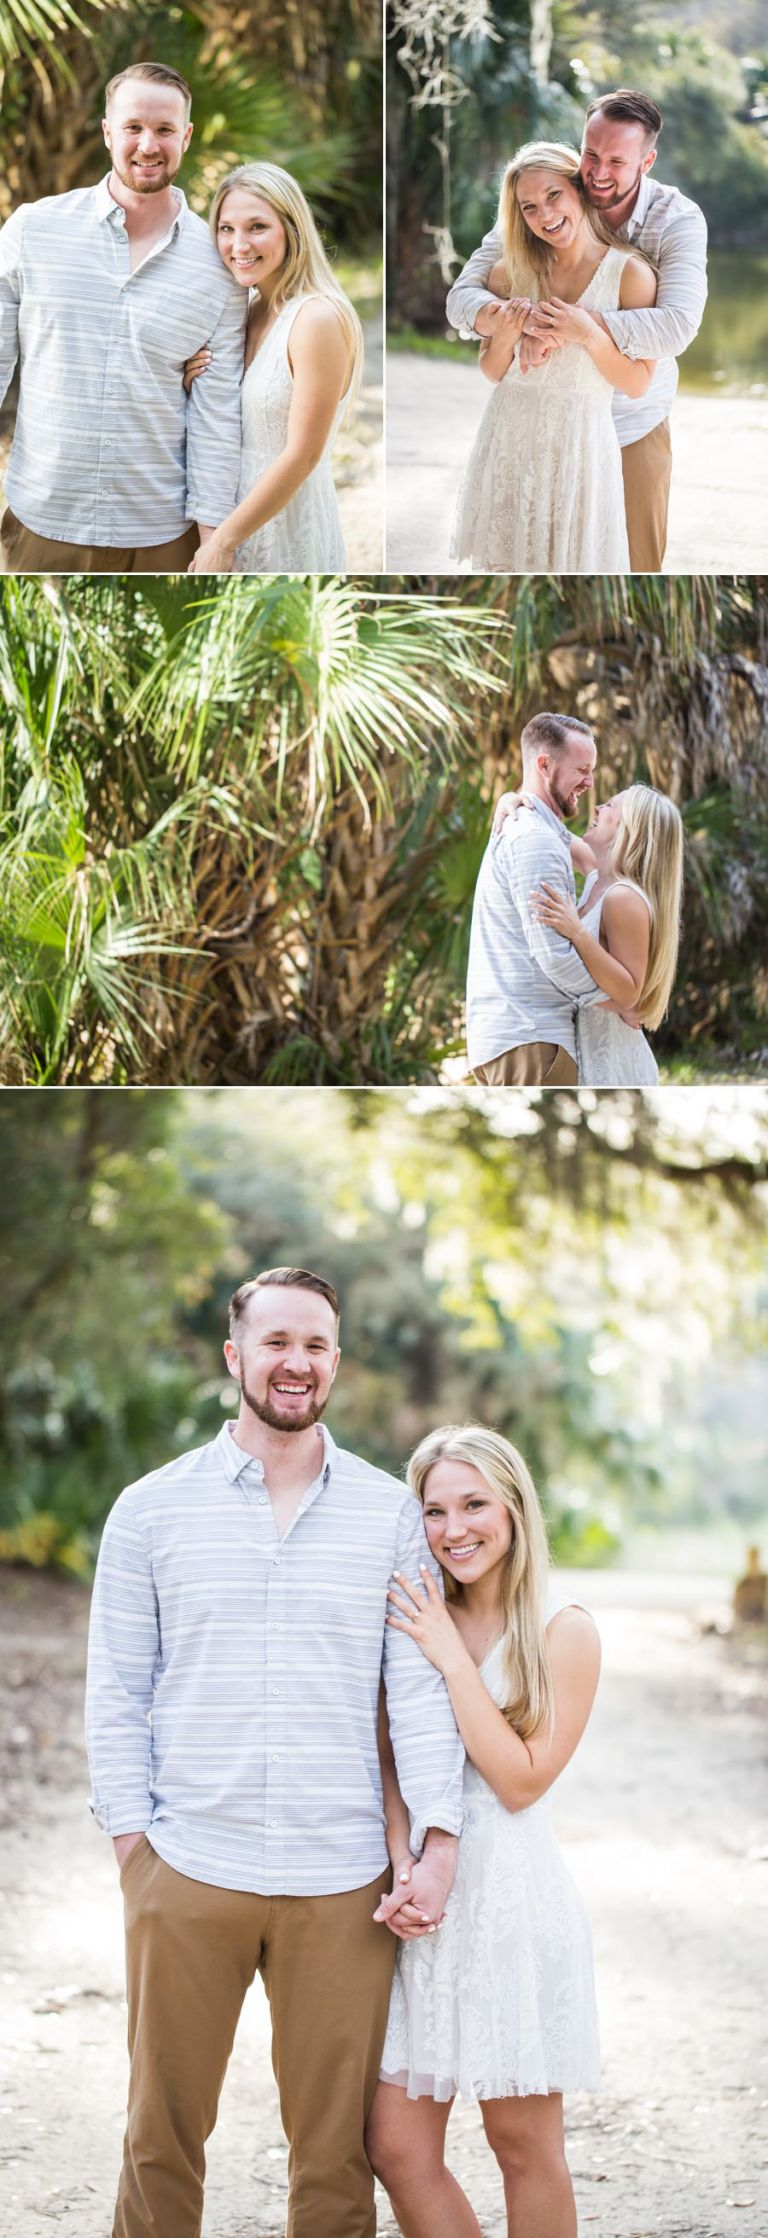 destin wedding photographer 1